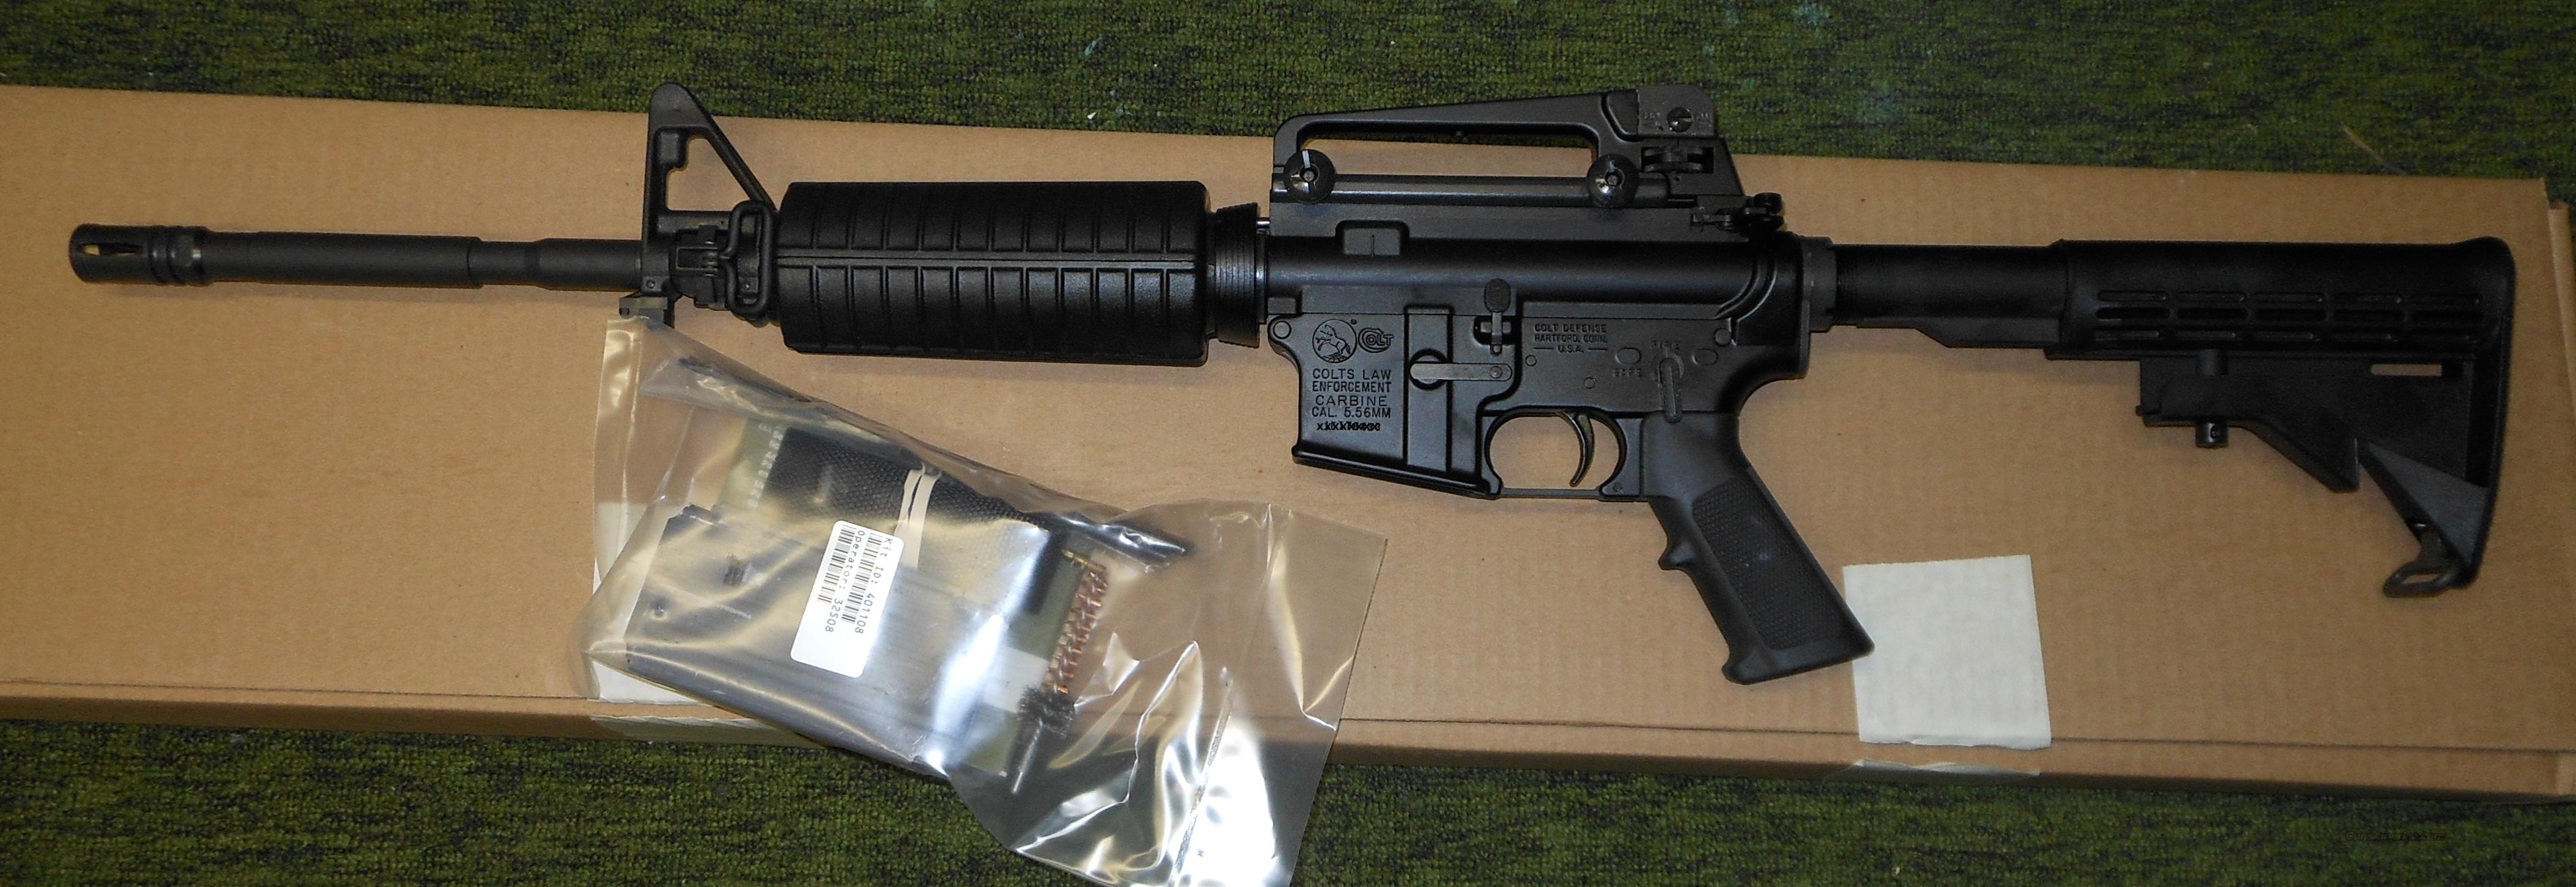 COLT LE 6920 003 M4A3 5.56 NATO LAW ENFORCEMENT CARBINE  Guns > Rifles > Colt Military/Tactical Rifles